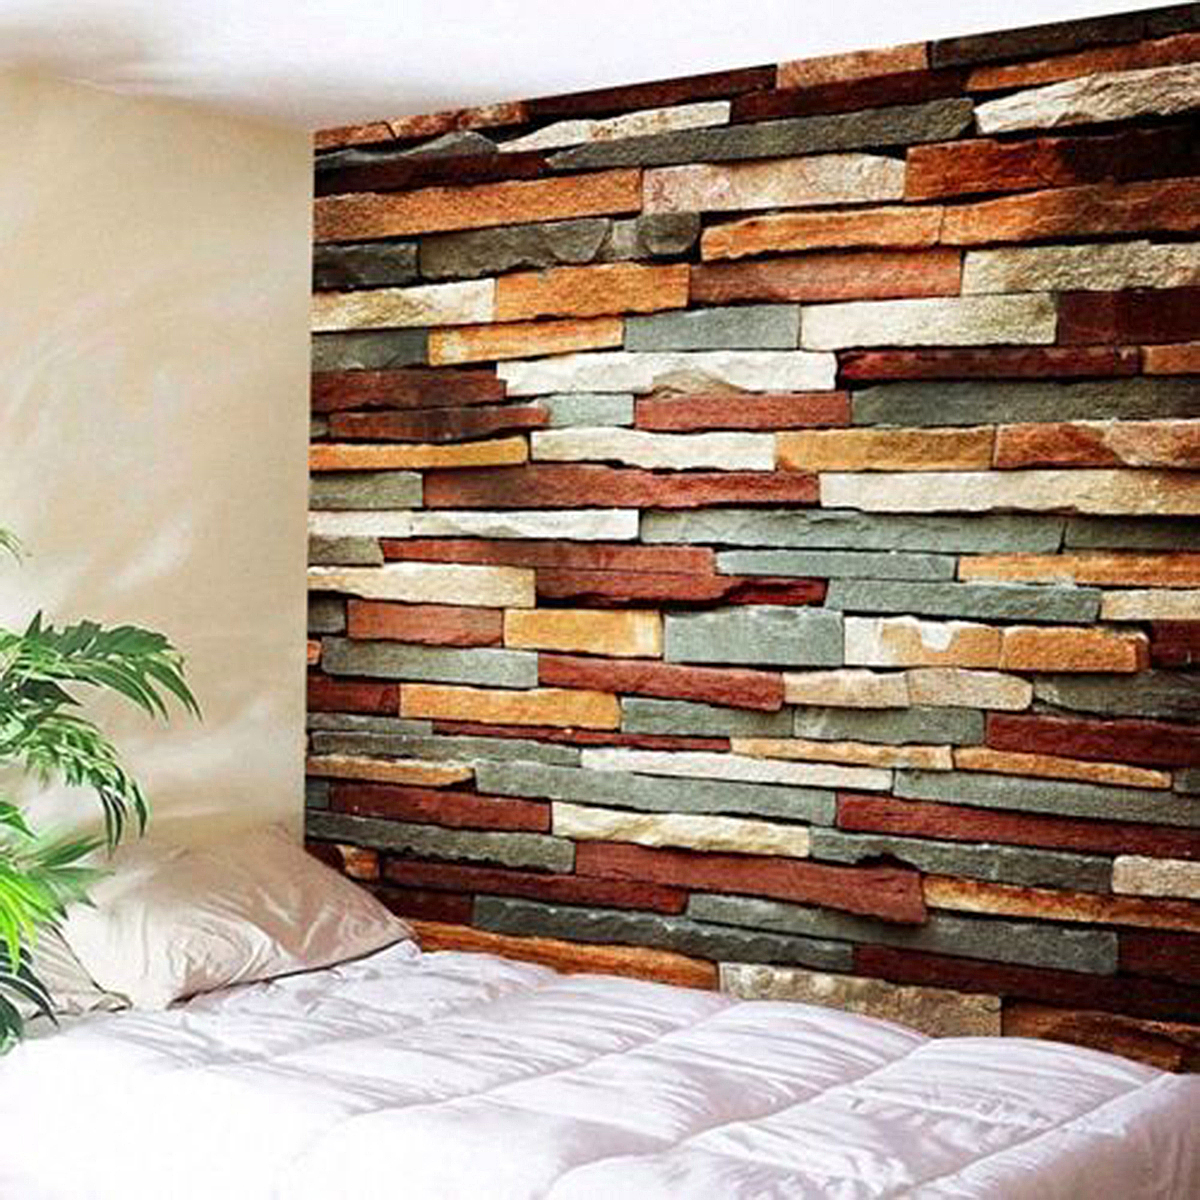 3D Art Decorations Brick Stone Print Pattern Bedspread Wall Hanging Tapestry Home Room Decor